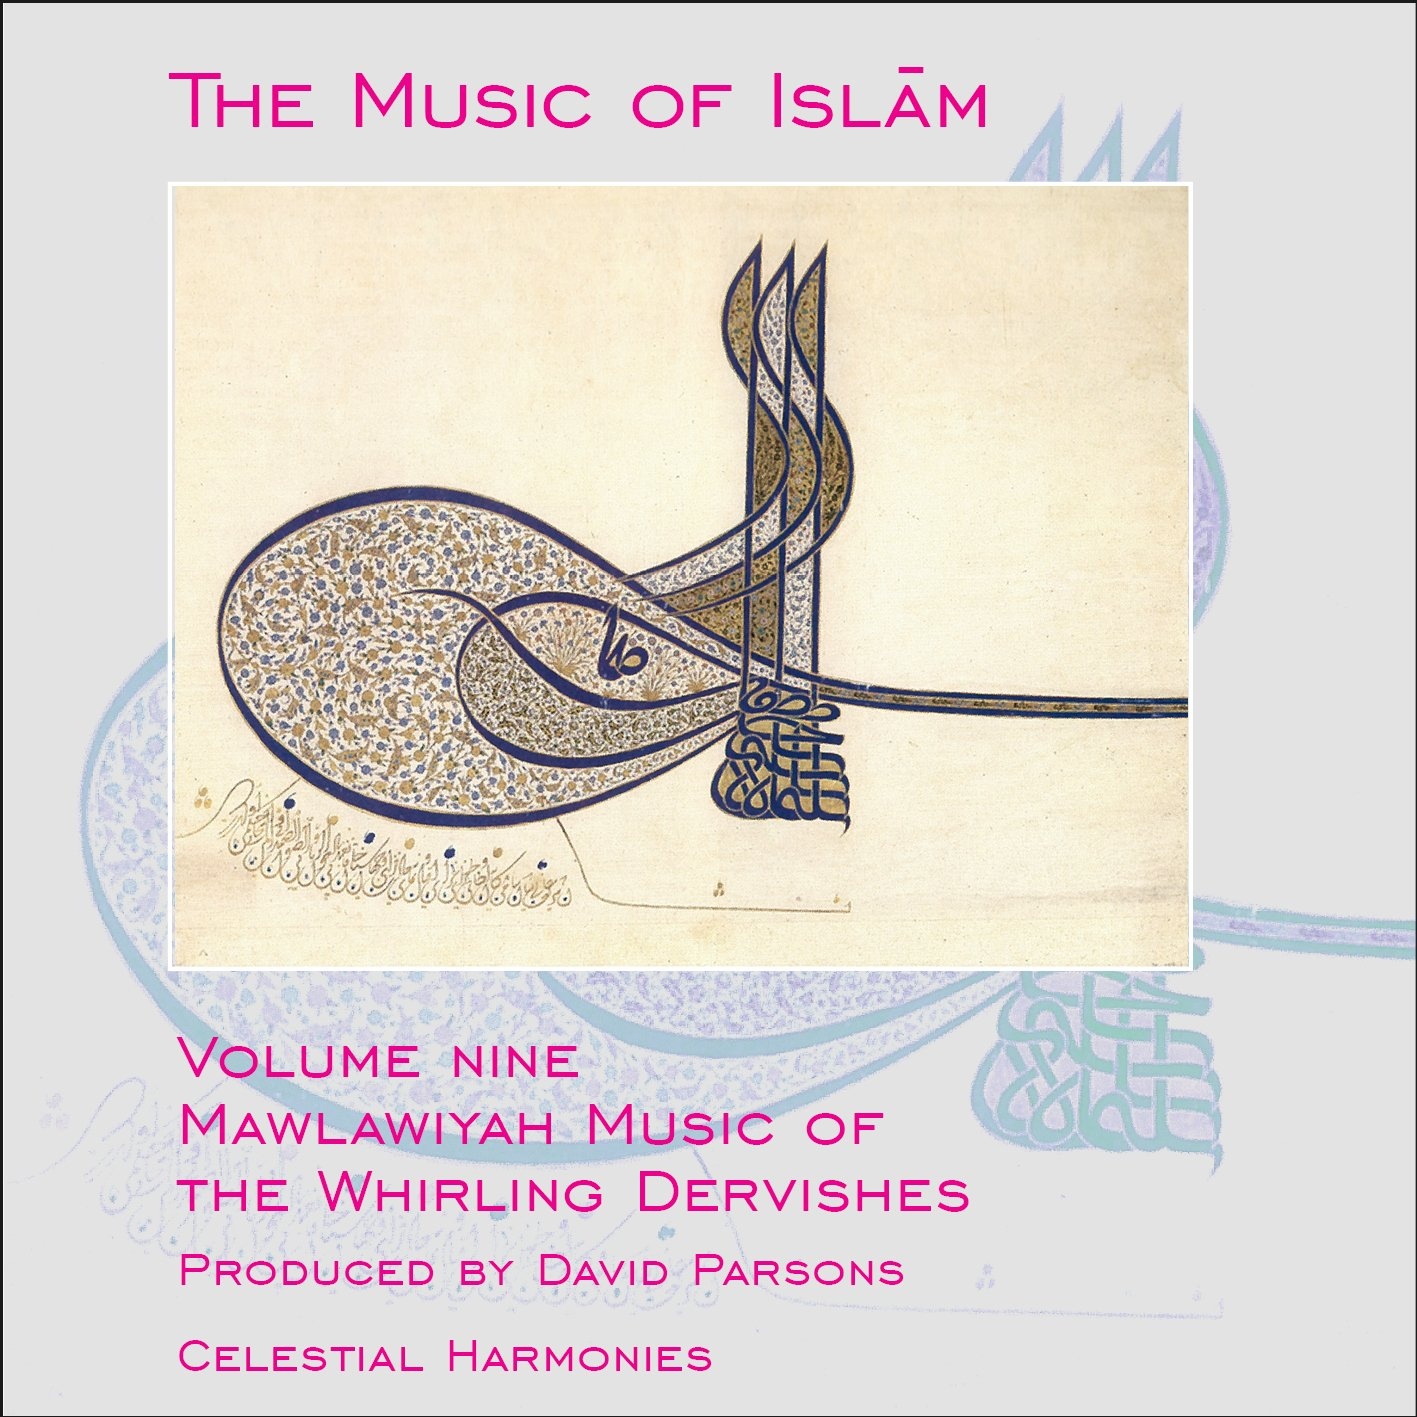 Music of Islam 9: Mawlawiyah Whirling Dervishes